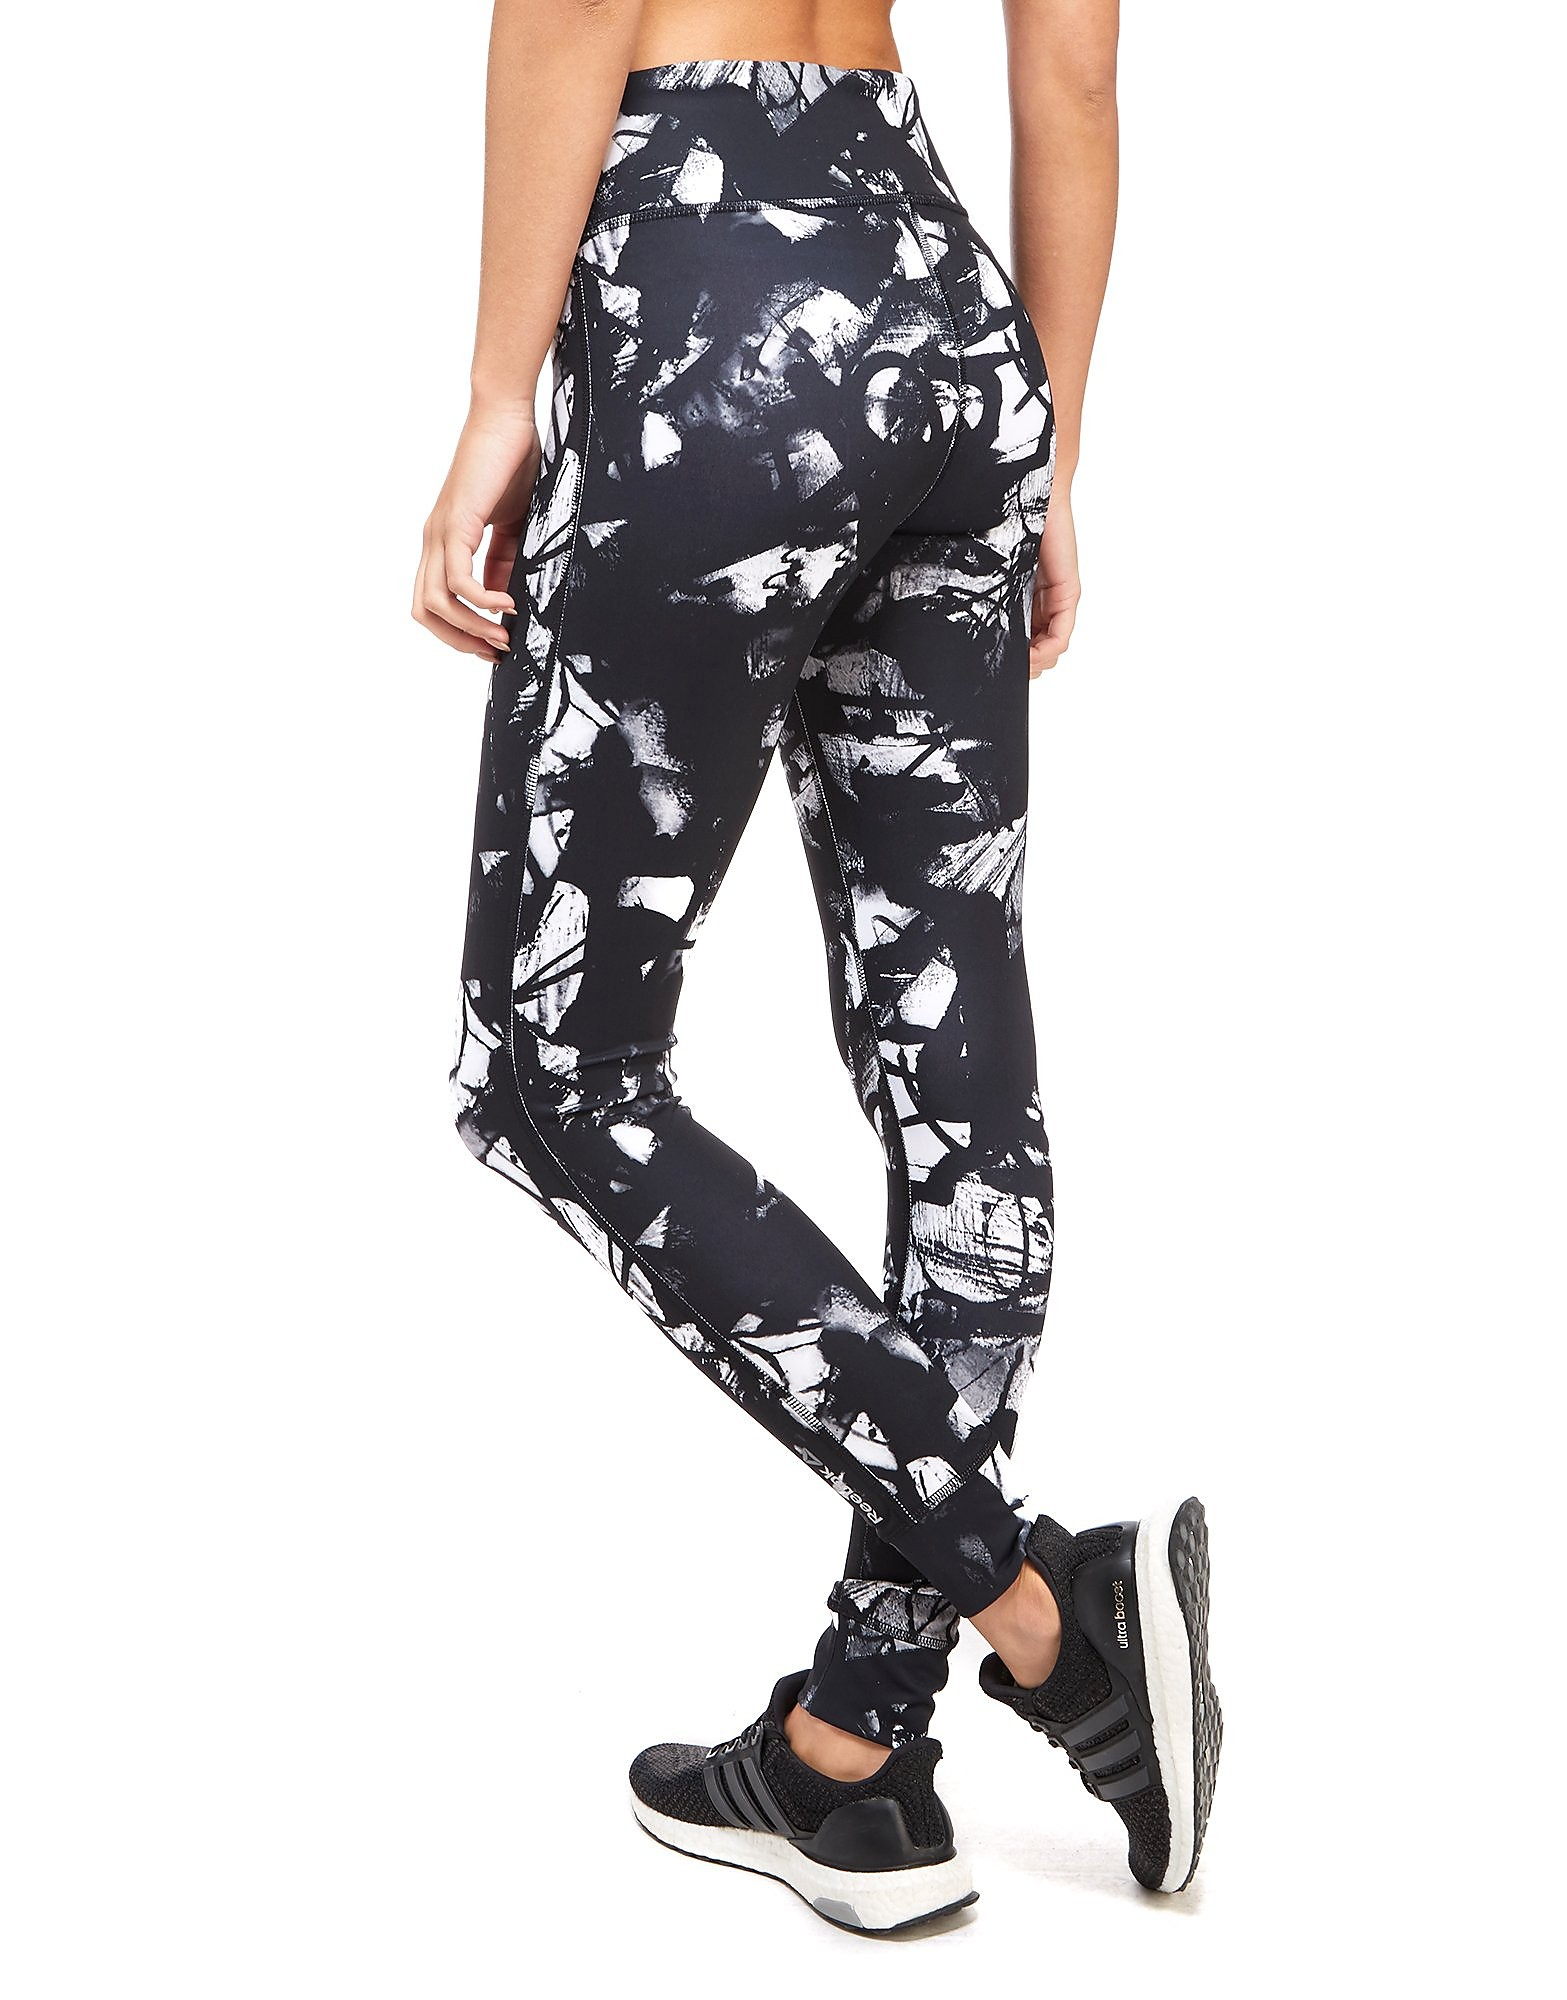 Reebok Rebel All-Over Print Leggings